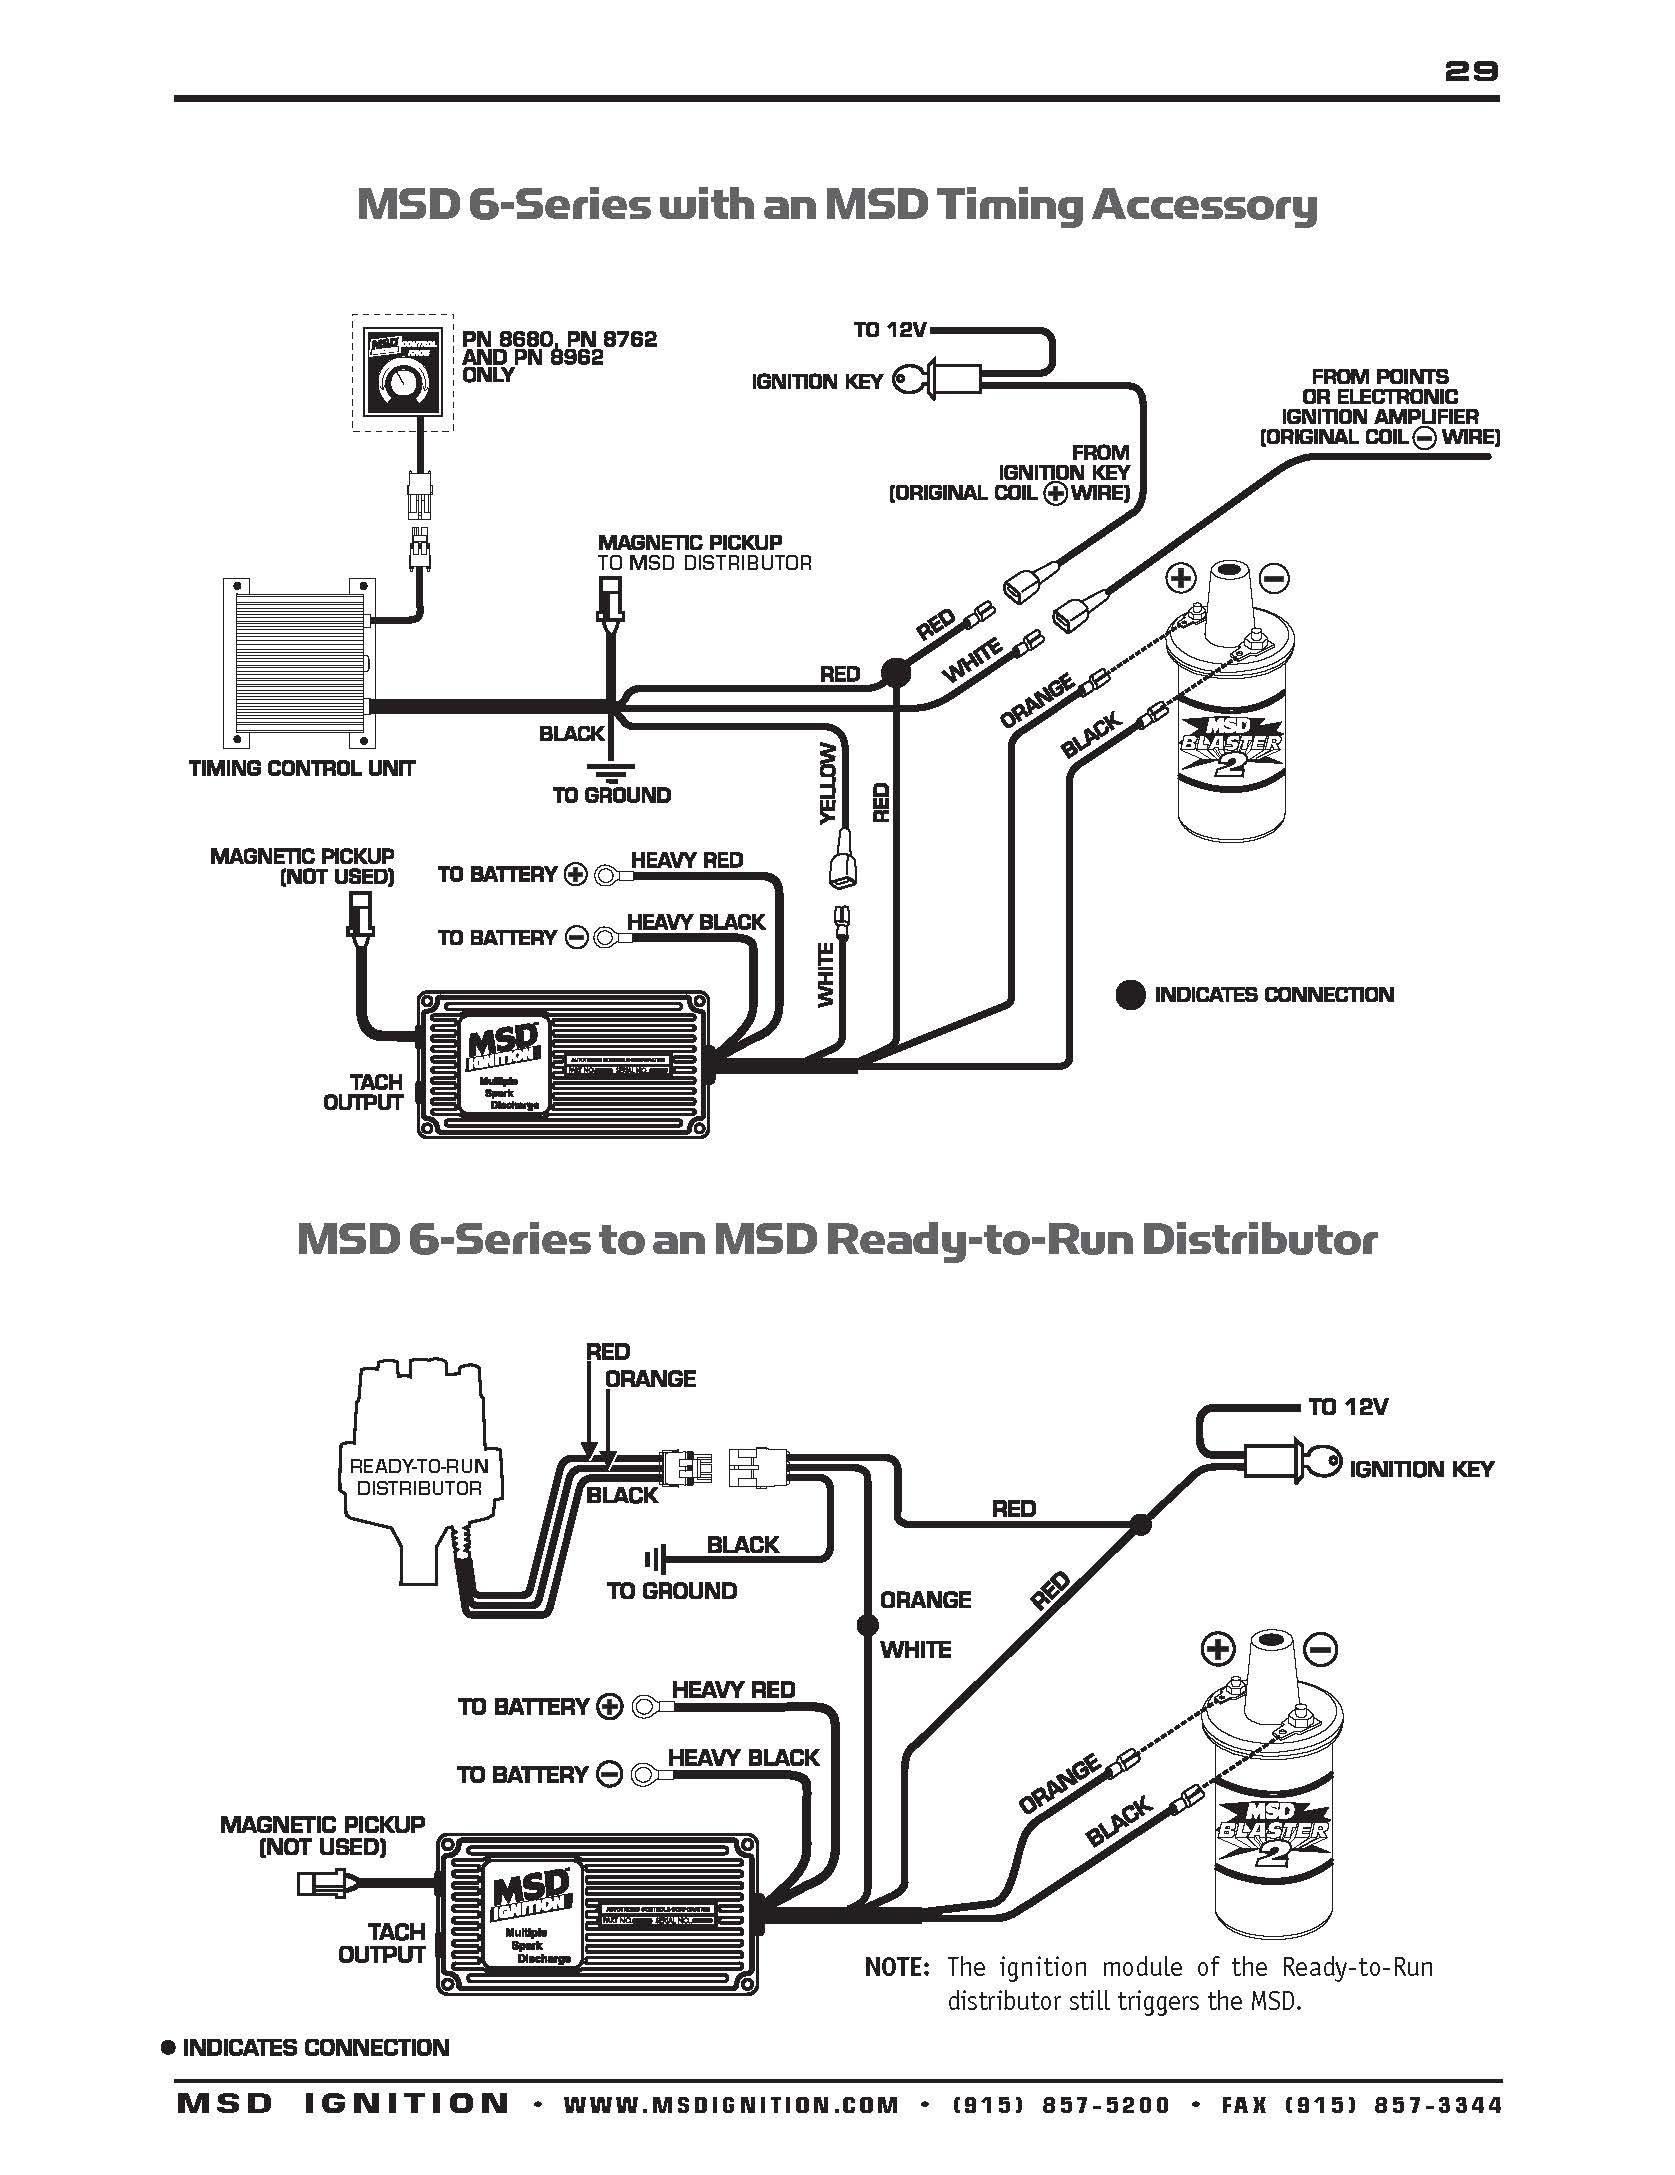 Ignition Coil Distributor Wiring Diagram Wiring Diagram Msd Distributor Mon Msd Ignition Unbelievable Of Ignition Coil Distributor Wiring Diagram